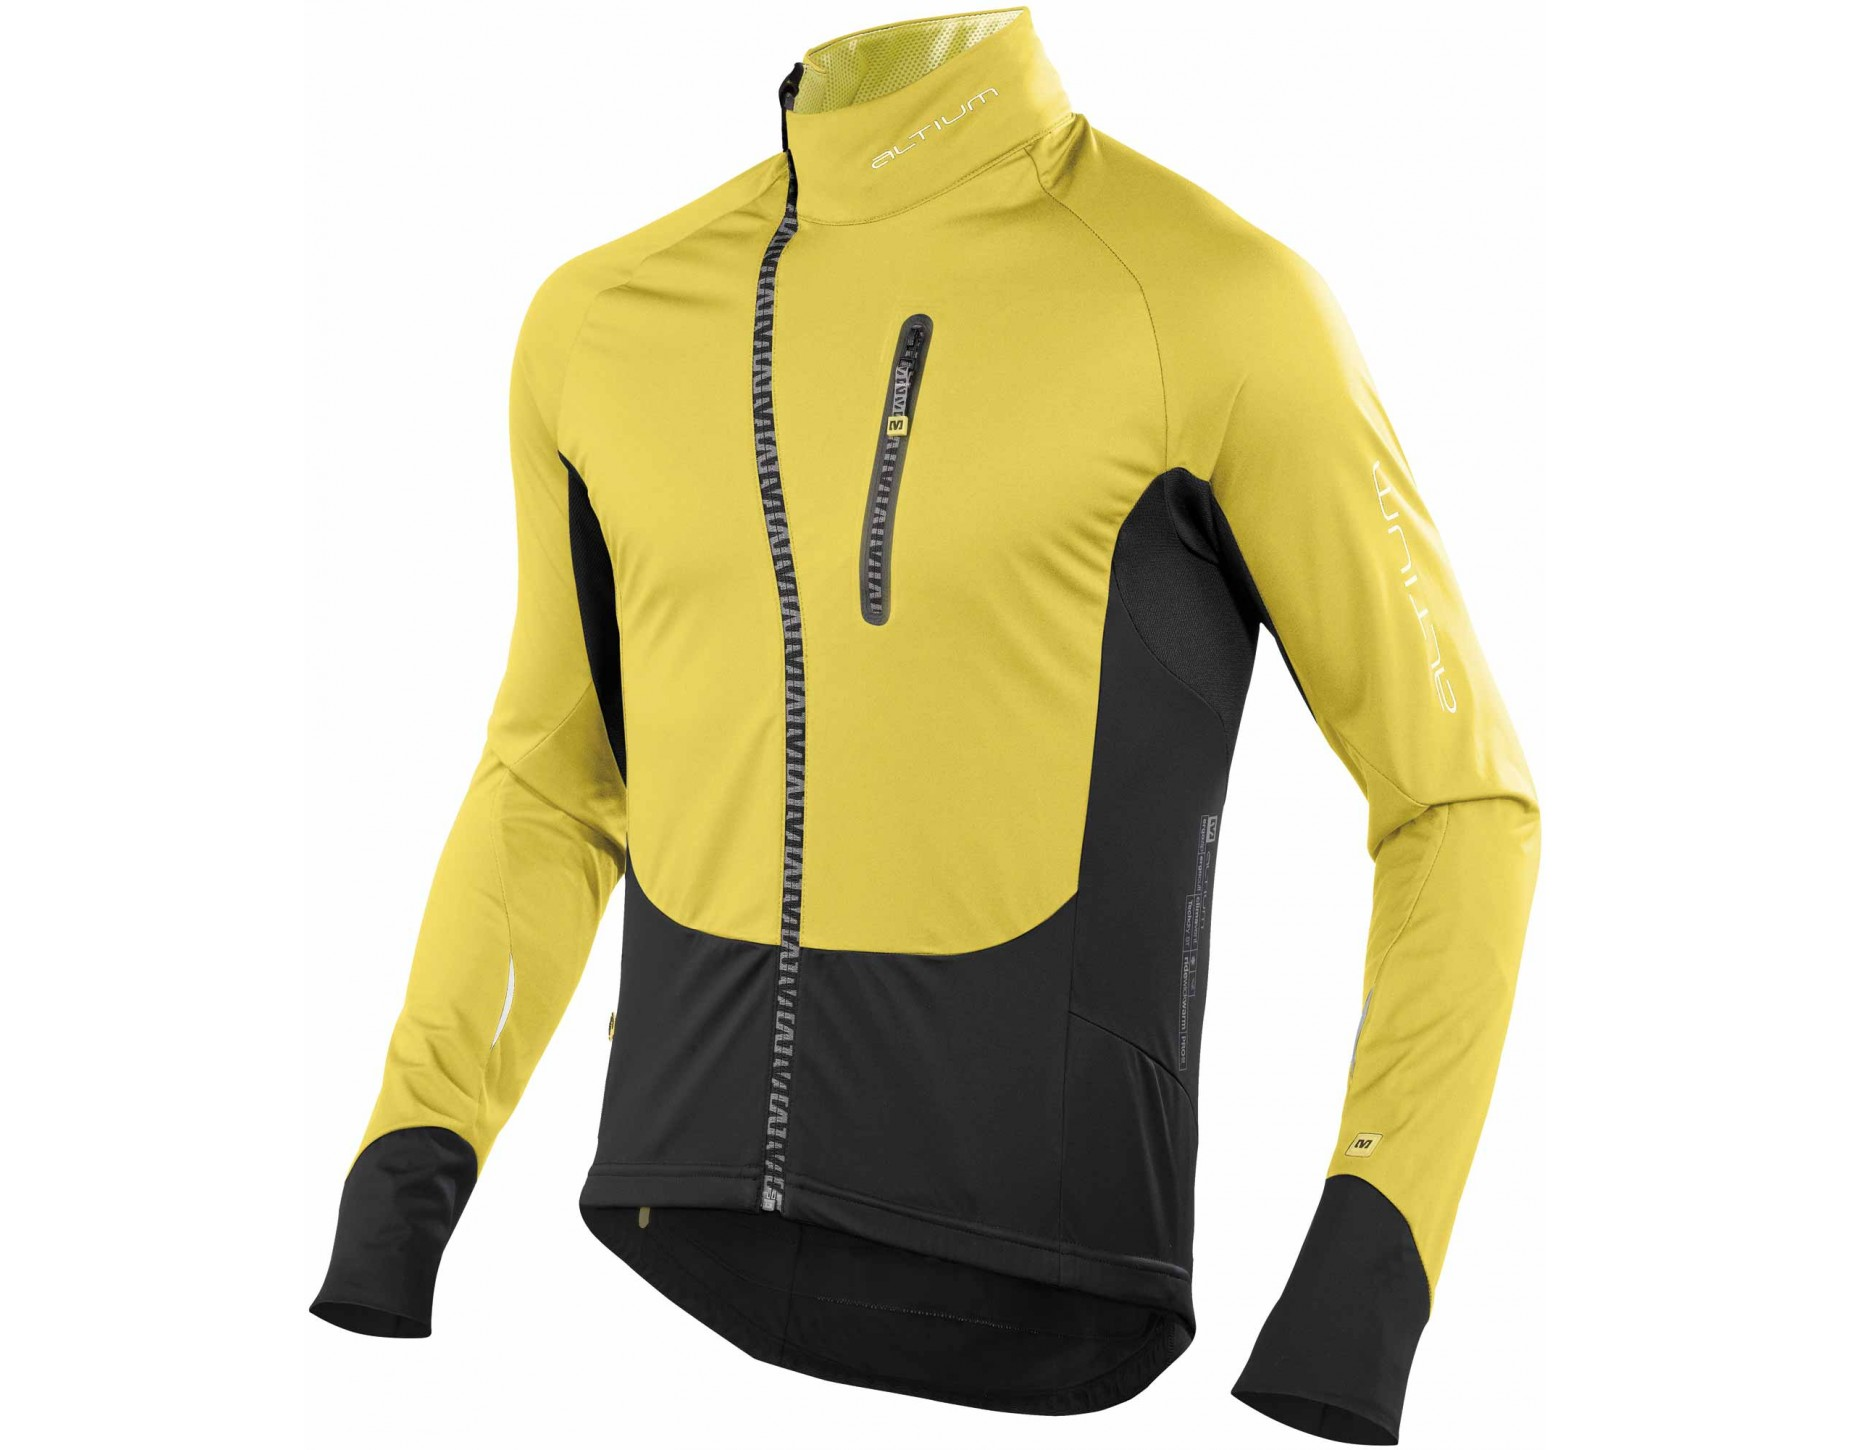 MAVIC CYCLONE bike jacket (windbreaker) – everything you need ...